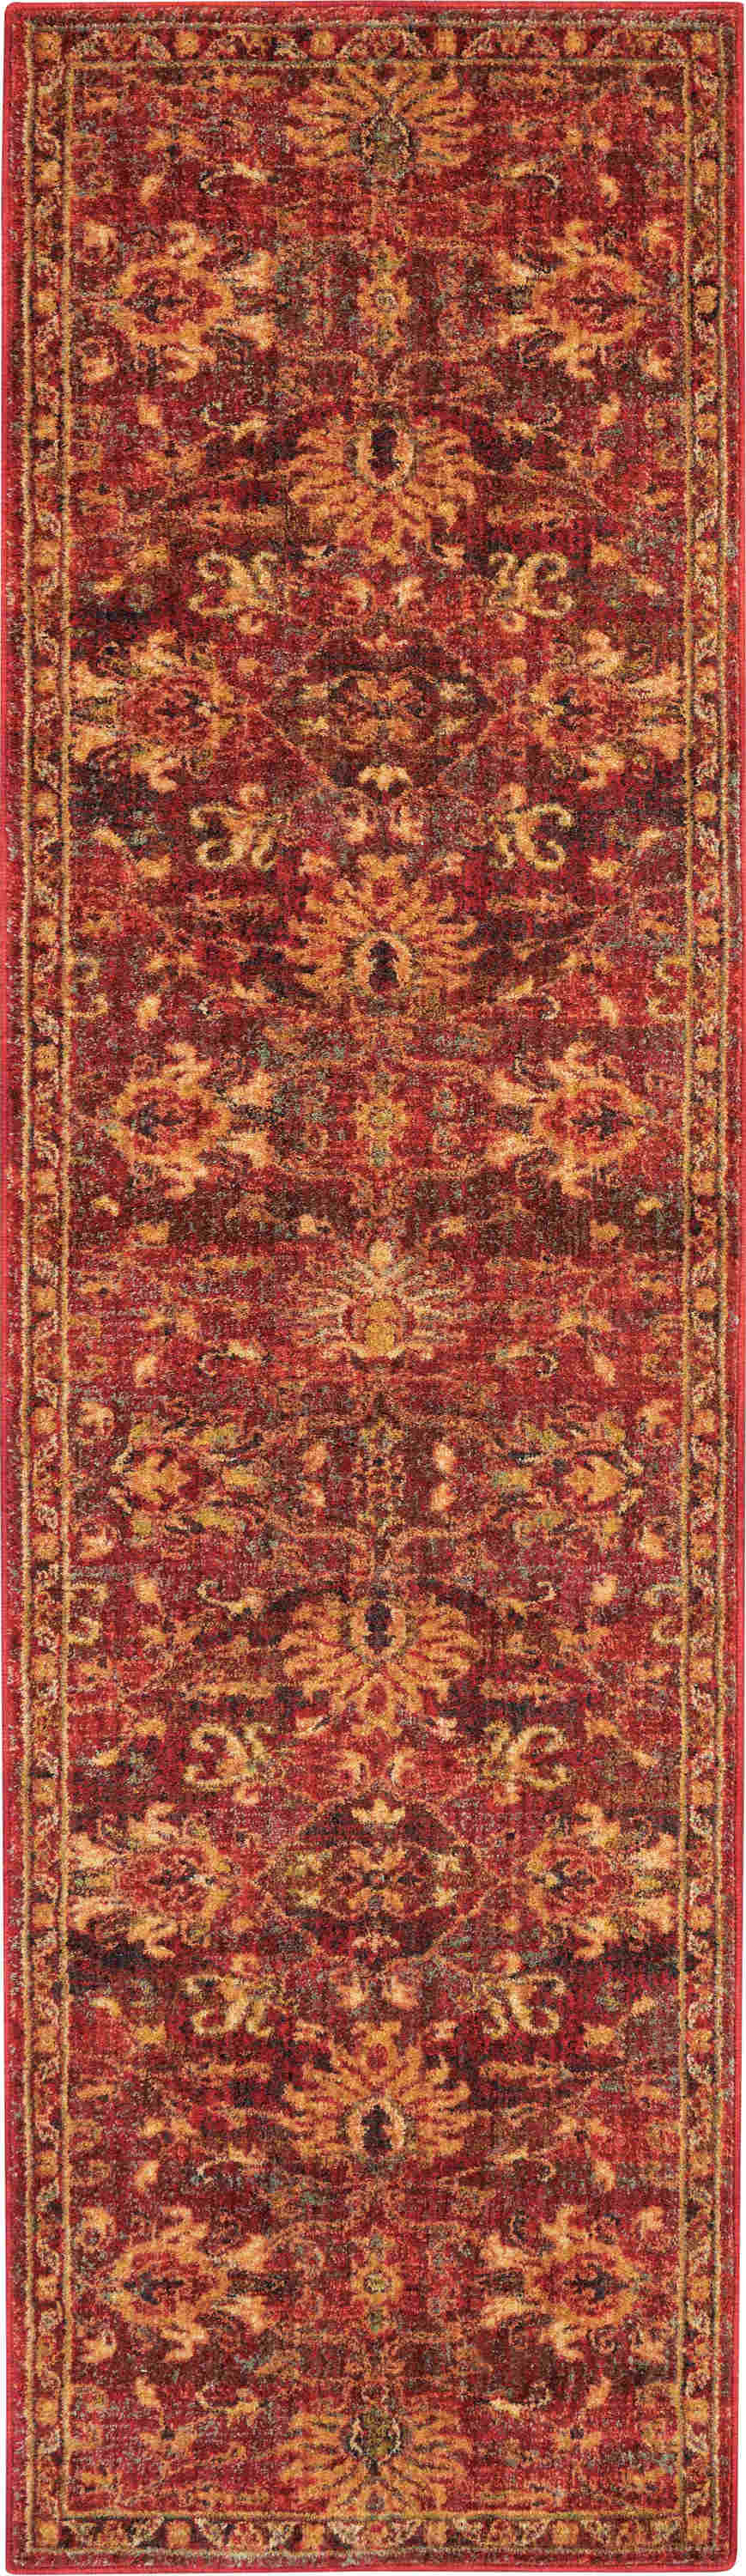 Nourison Jewel Traditional Brick Rug Jel02